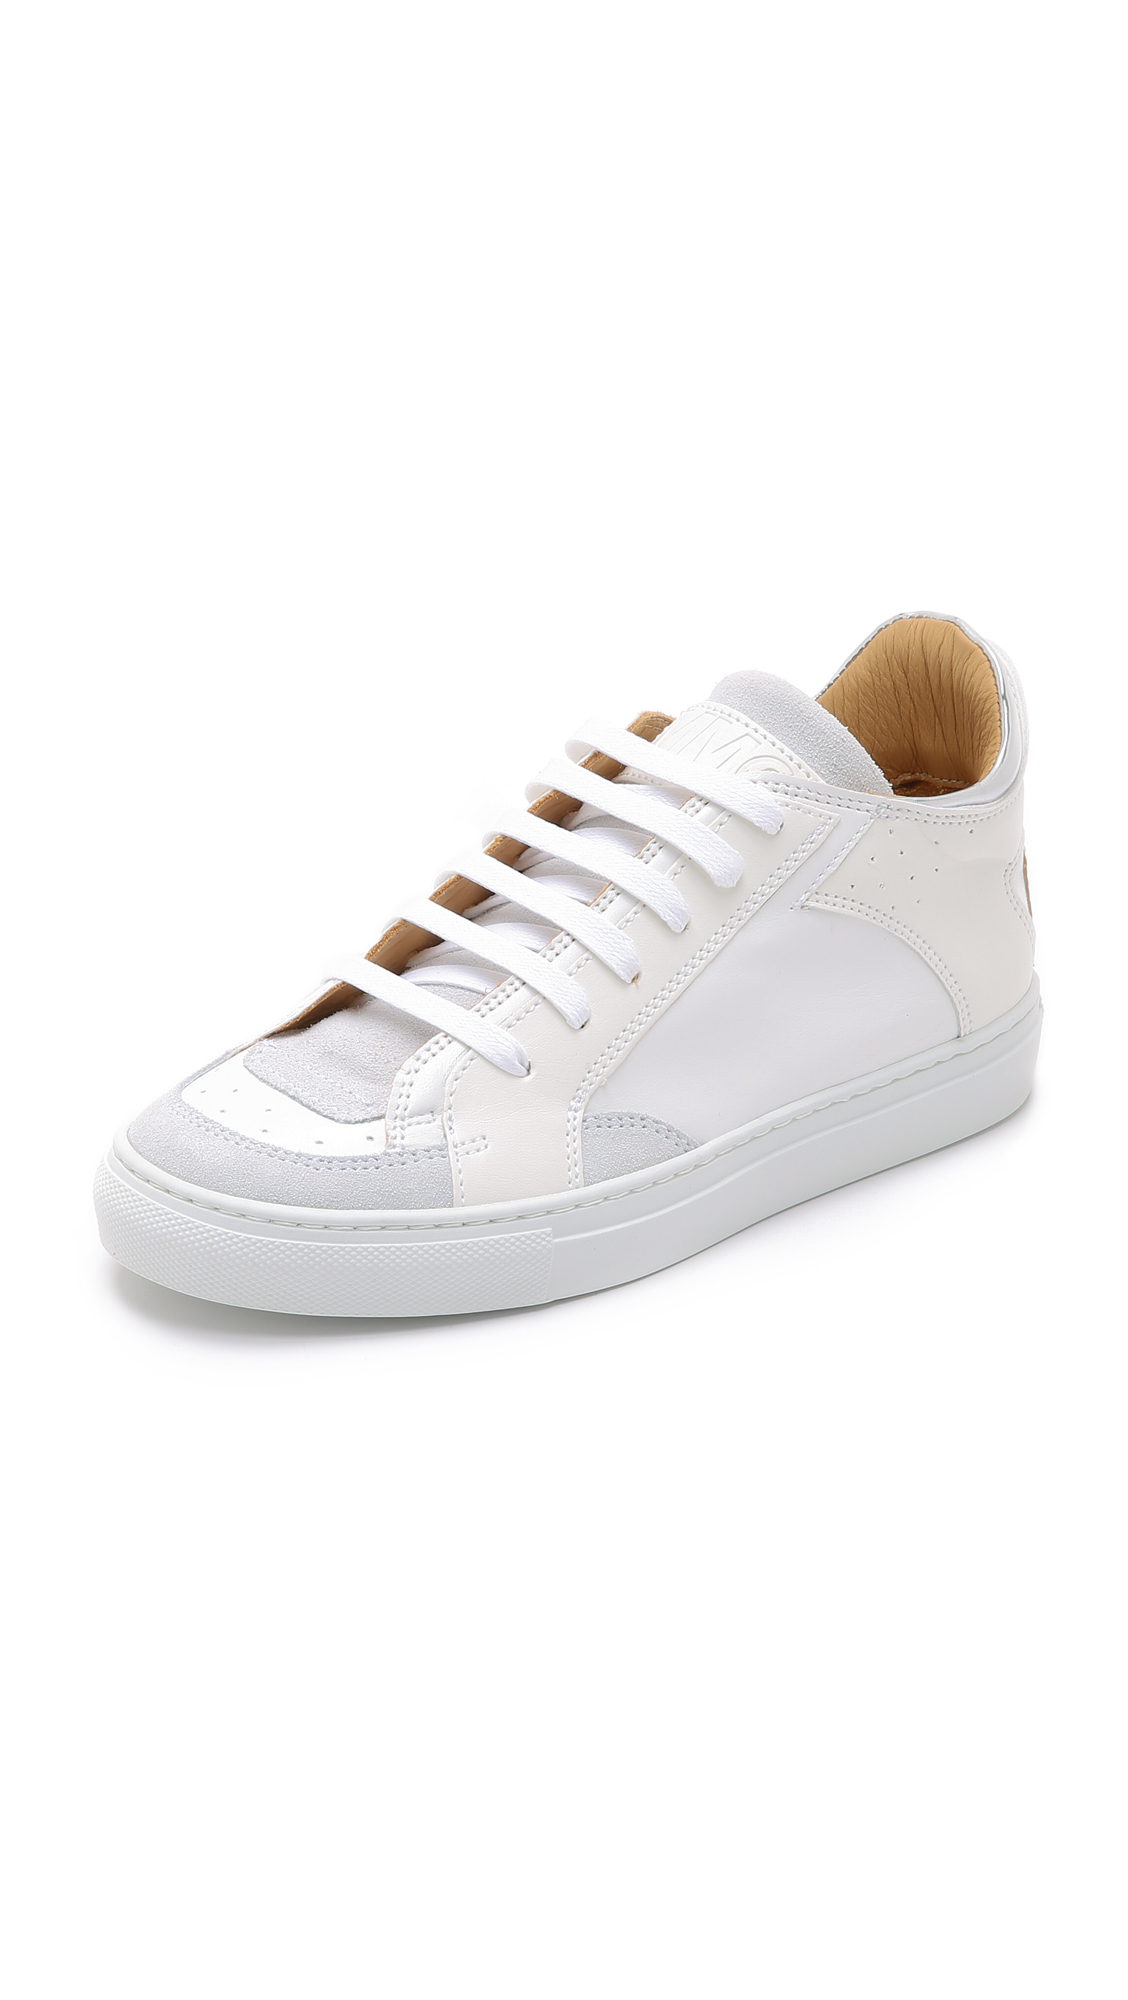 mm6 by maison martin margiela low top sneakers in white lyst